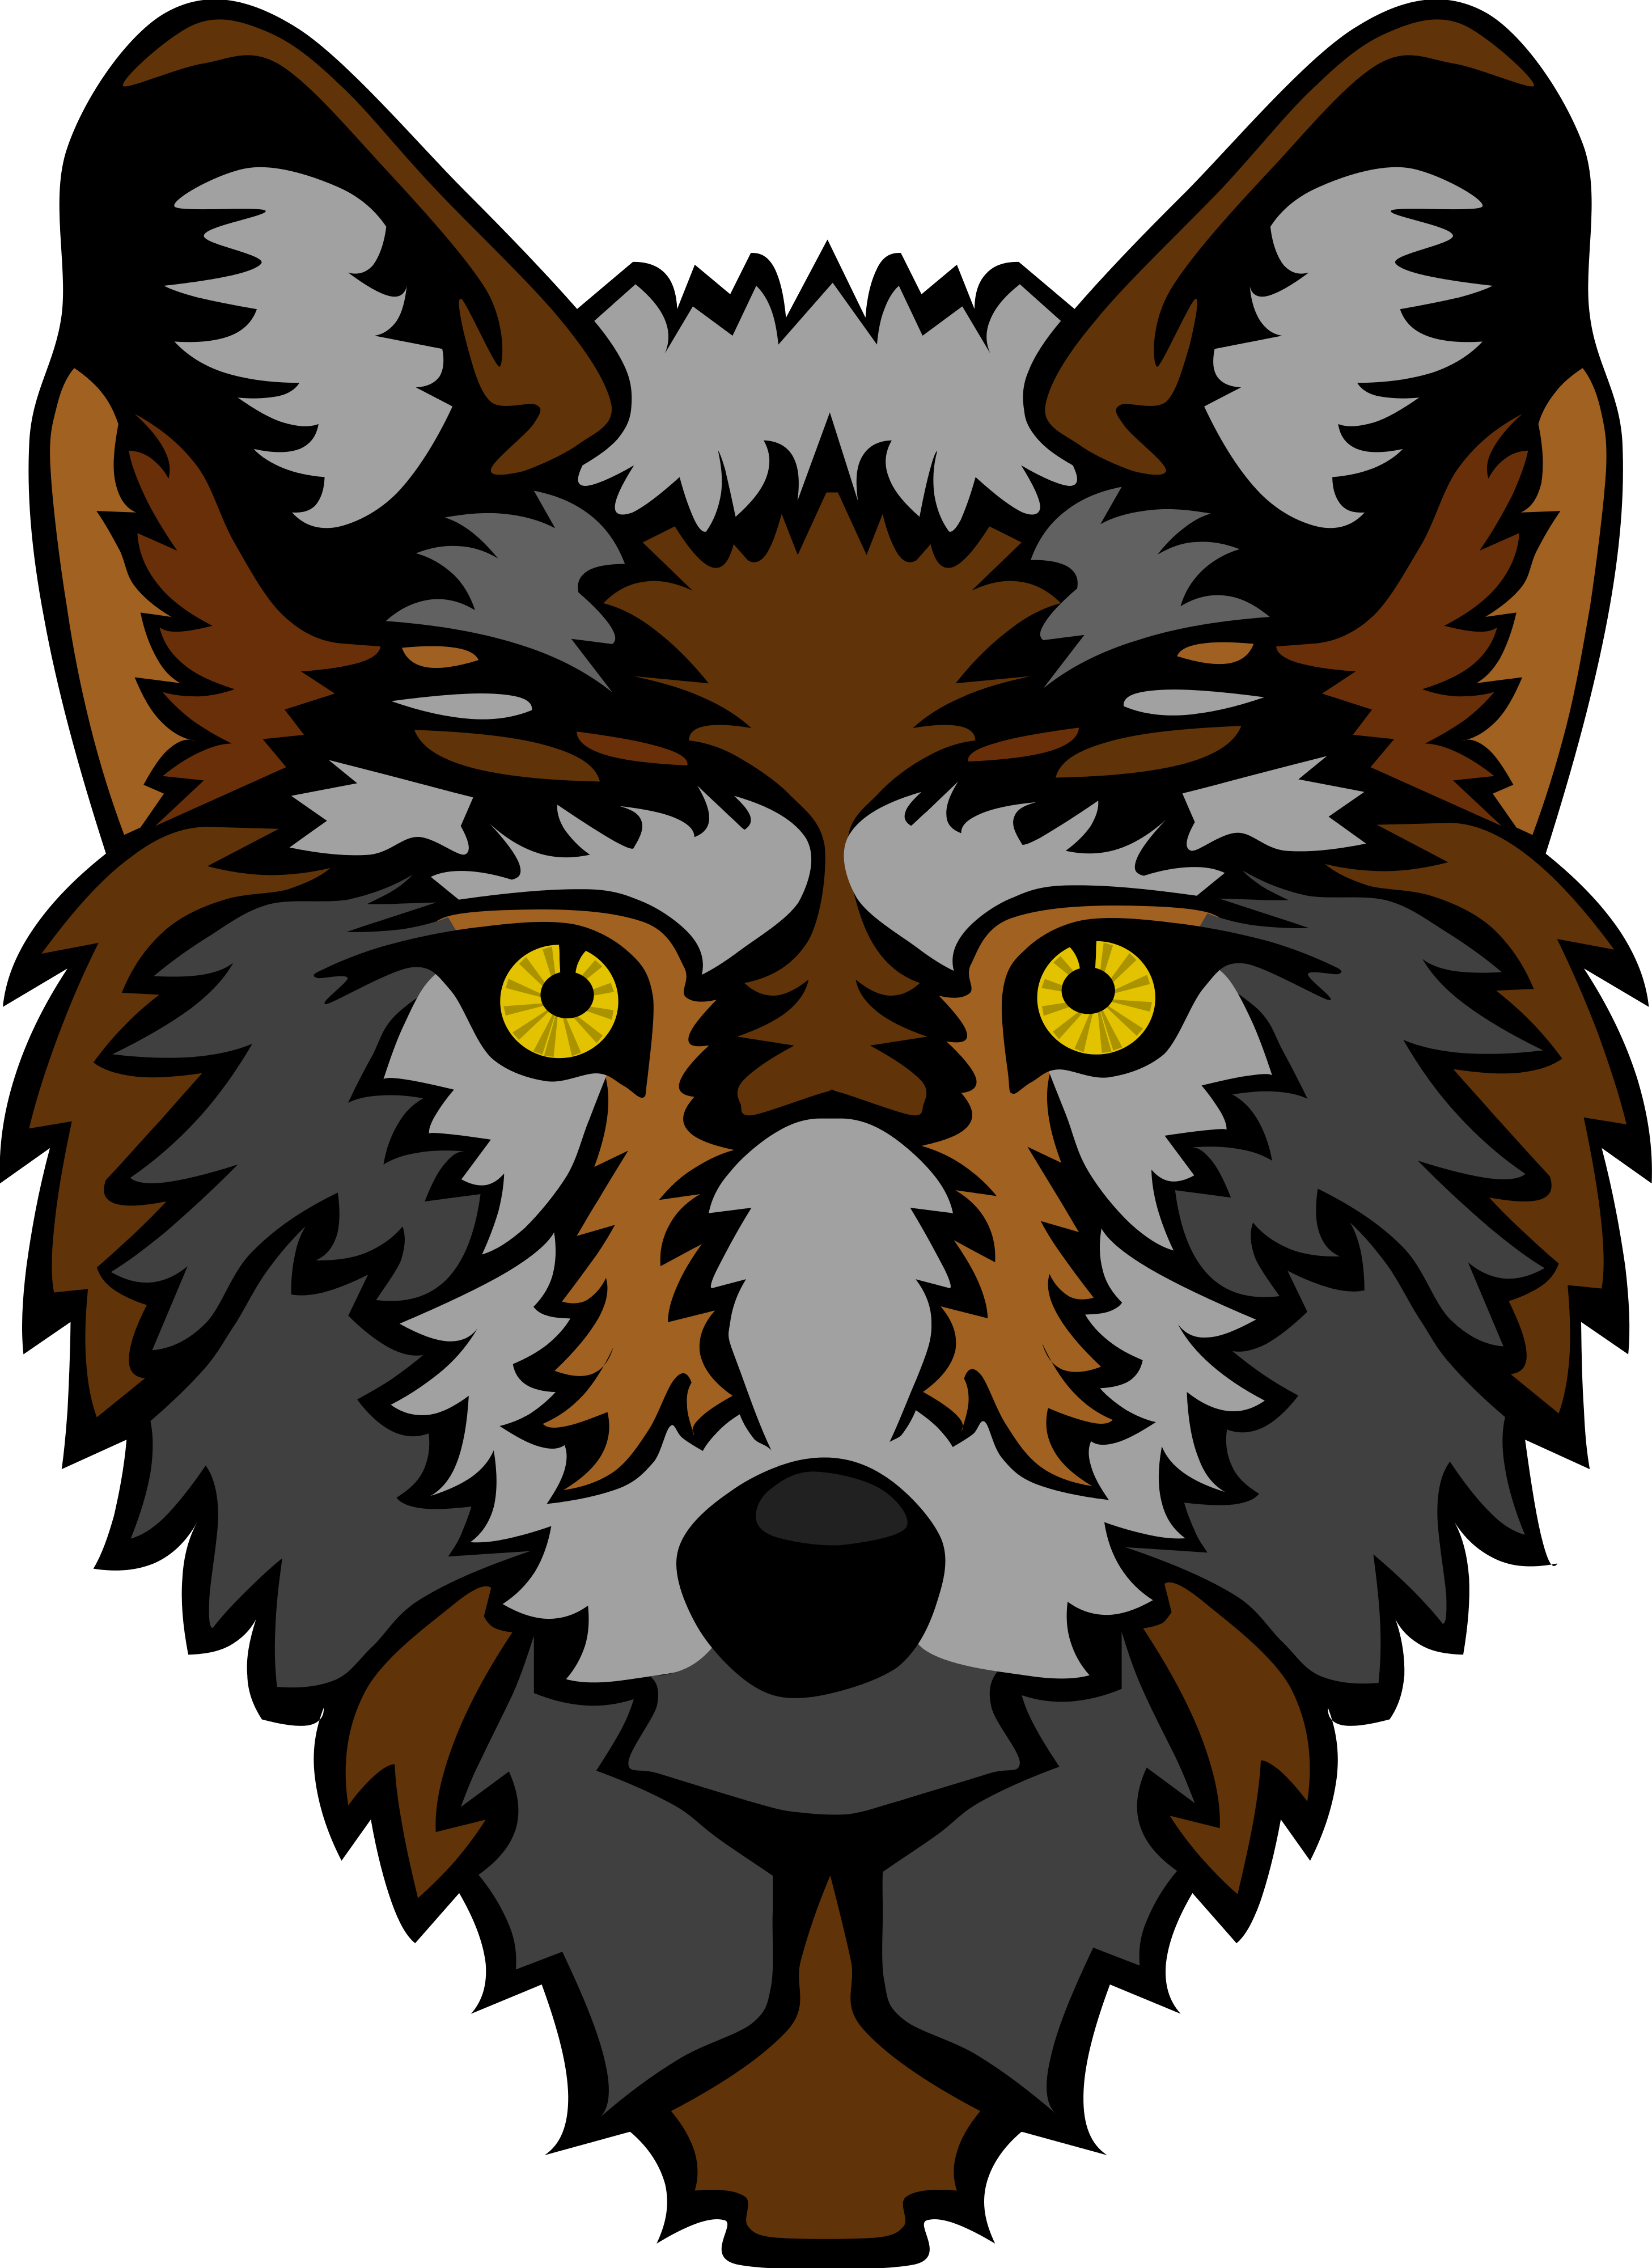 Purple clipart wolf. About werewolves many interesting